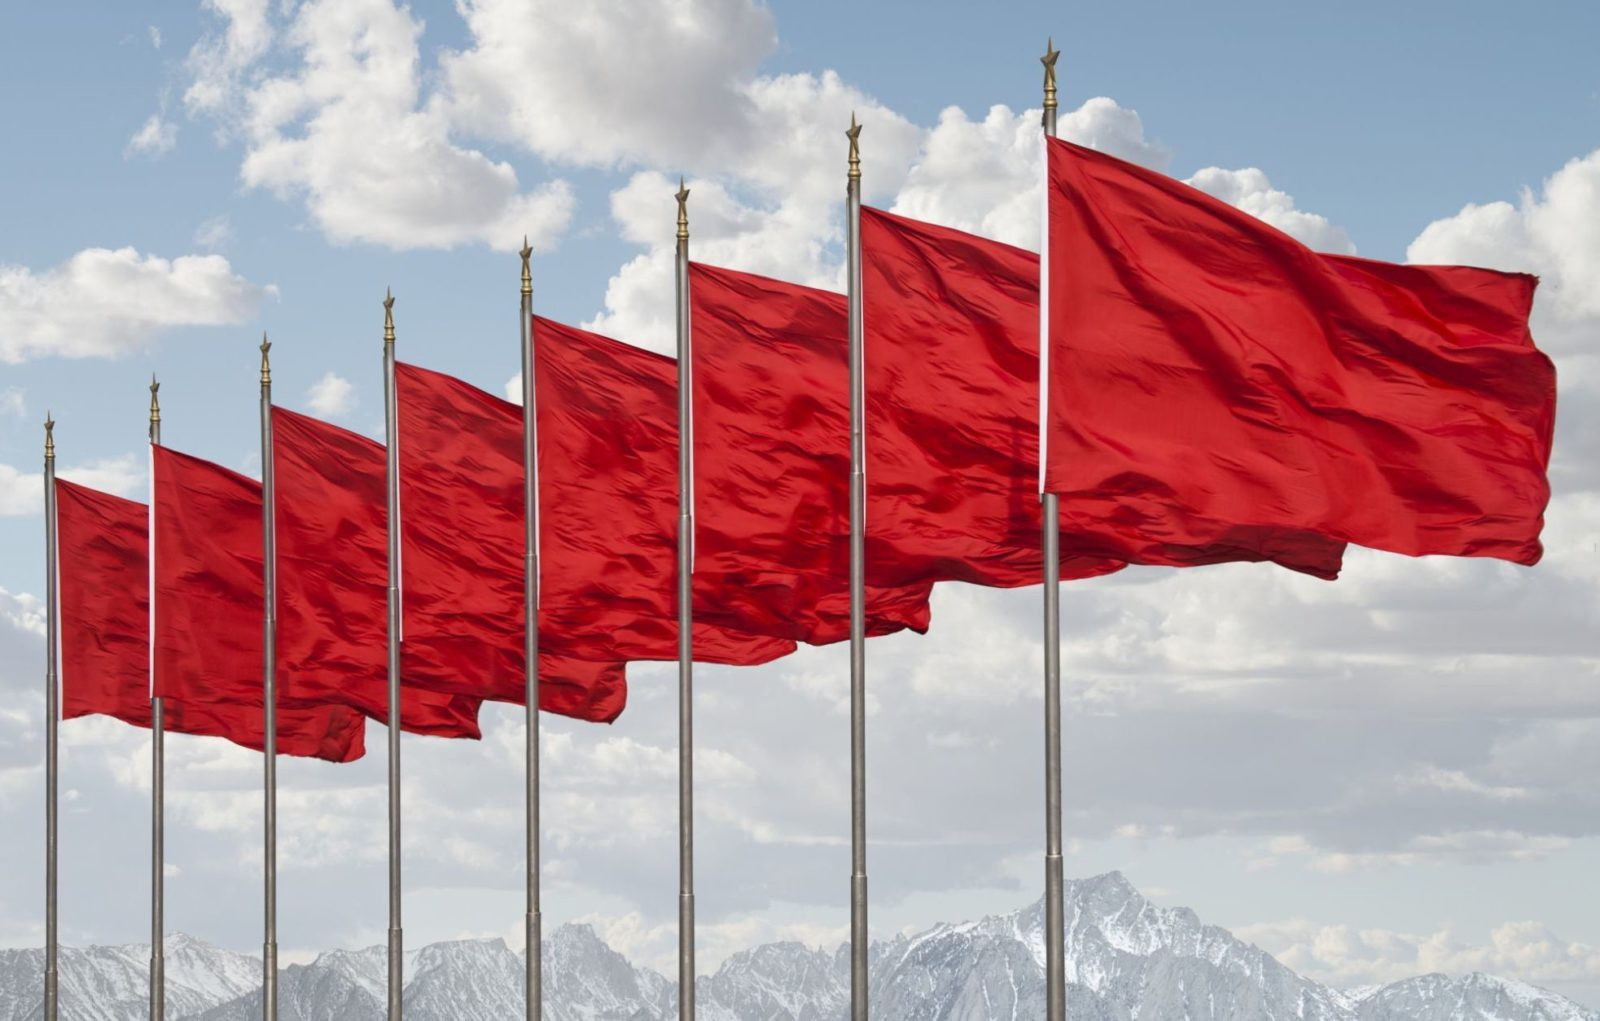 8 Red Flags When Looking For An Entry Level Sales Position